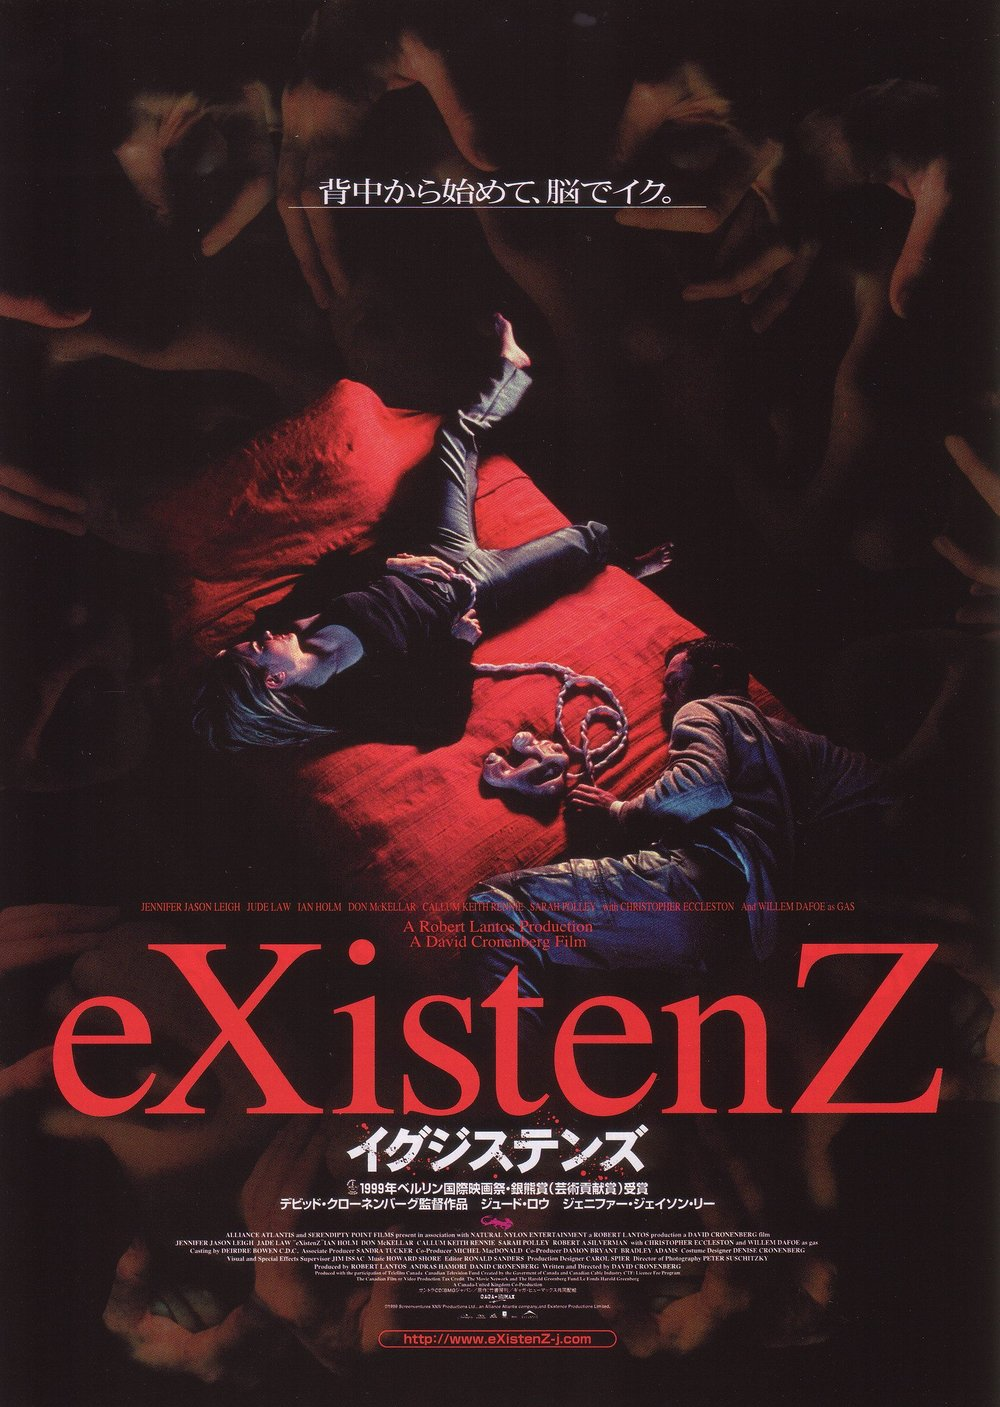 eXistenZ (1999) - Directed by: David CronenbergStarring: Jude Law, Jennifer Jason Leigh, Willem Dafoe, Ian Holm, Christopher EcclestonRated: R for Strong Sci-Fi-Fi Violence and Gore, and For LanguageRunning Time: 1 h 37 mTMM Score: 4 stars out of 5STRENGTHS: Originality, Directing, Writing, Story, ThemesWEAKNESSES: Pacing in First Act